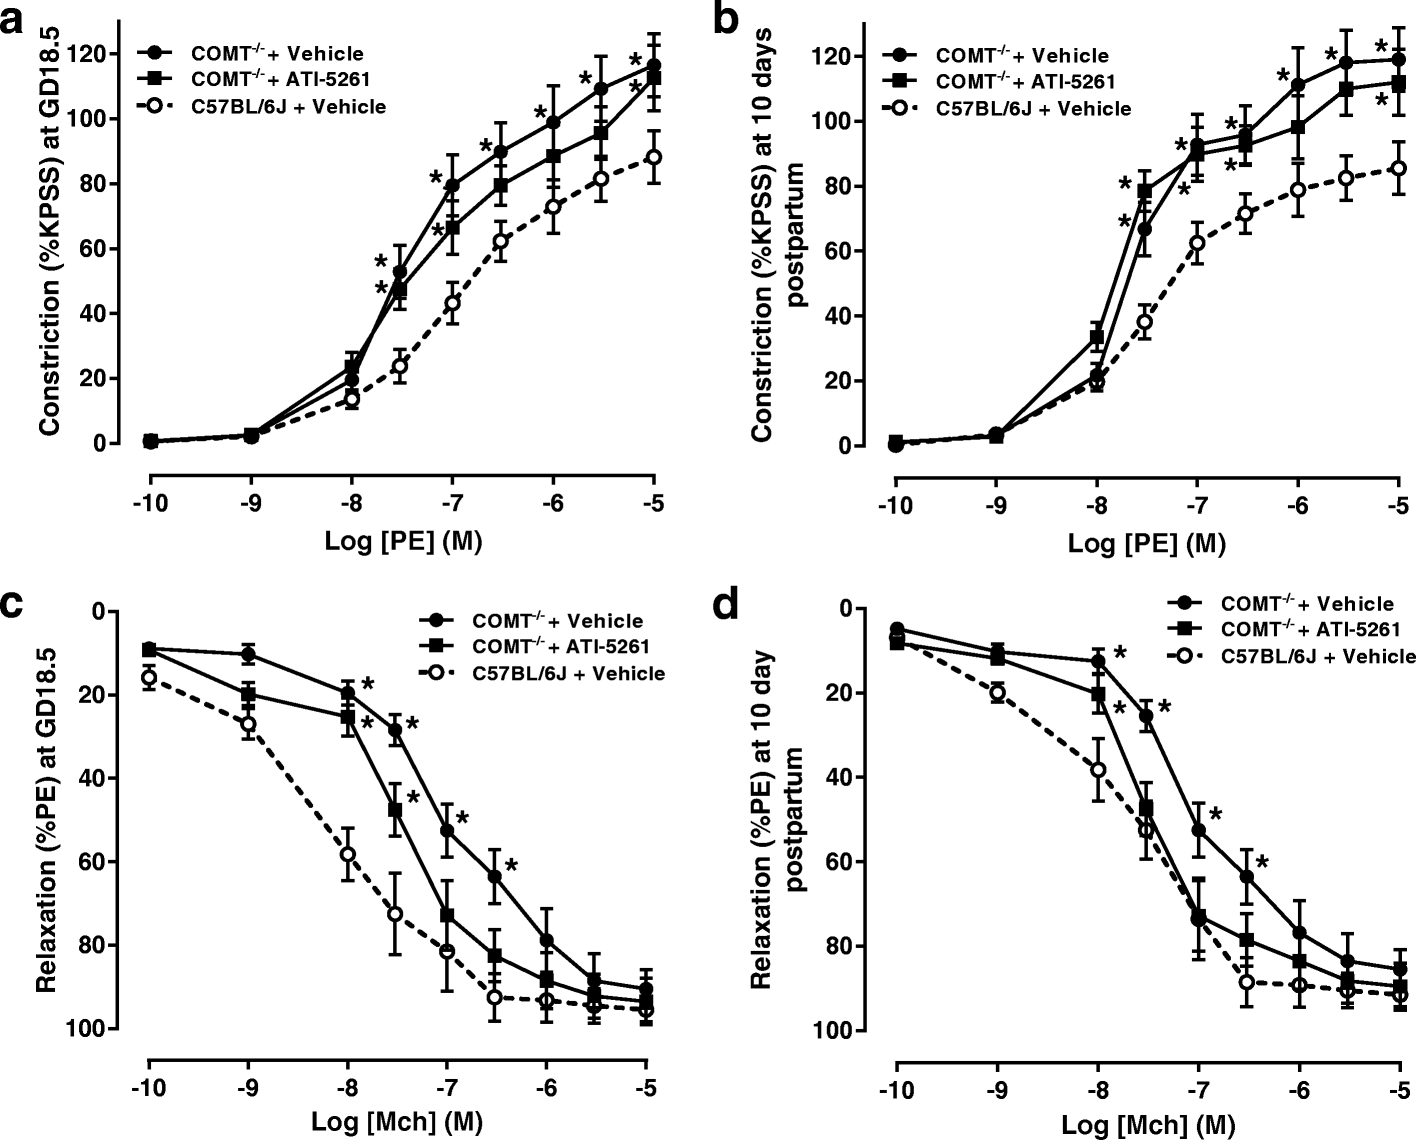 Apolipoprotein A1 Mimetic Peptide Ati 5261 Reverses Arterial Stiffness At Late Pregnancy And Early Postpartum In A Comt Mouse Model Of Preeclampsia Springerlink